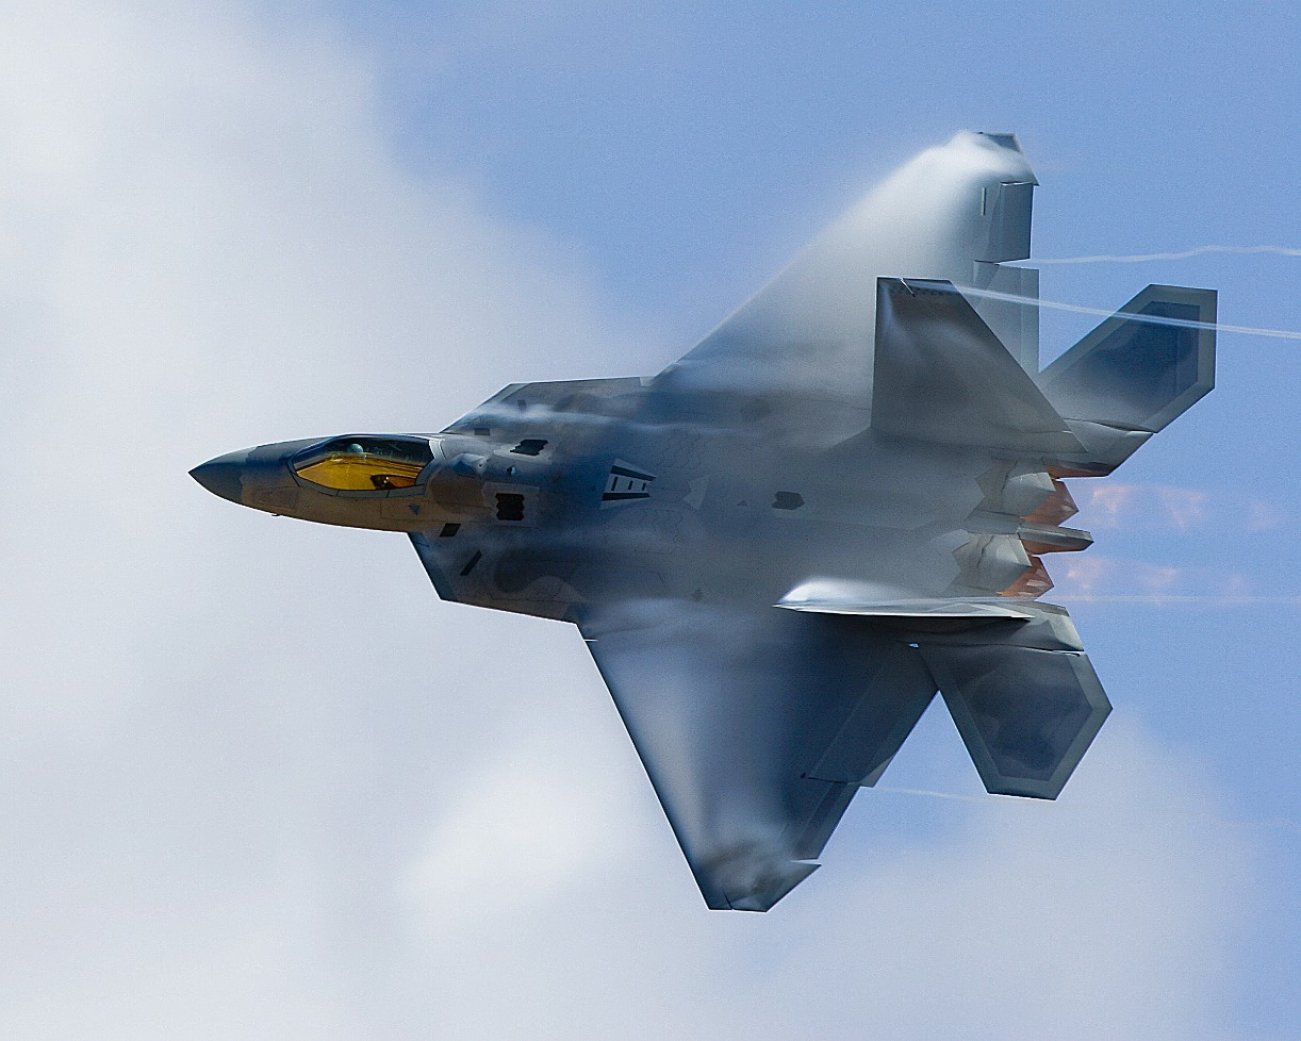 Forget Dogfighting, The Stealthy F-22 Raptor Almost Became A Bomber